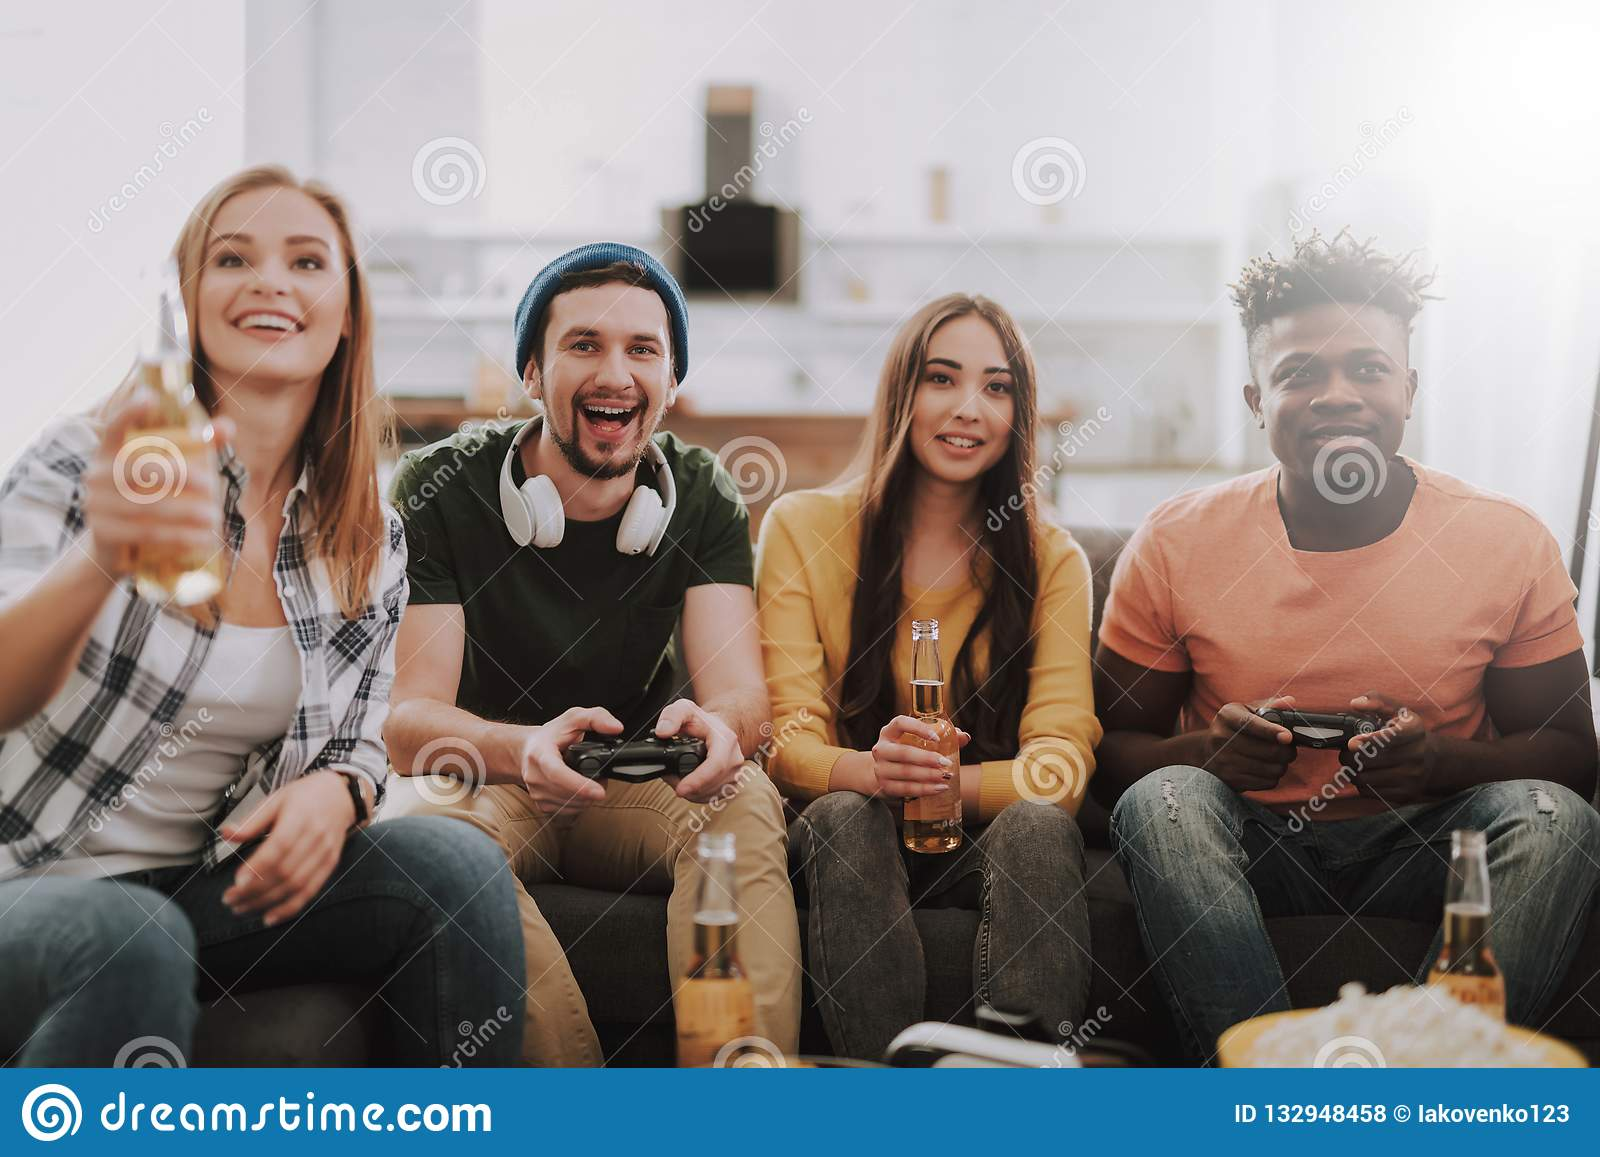 Group of friends playing video games and enjoying drinks at home